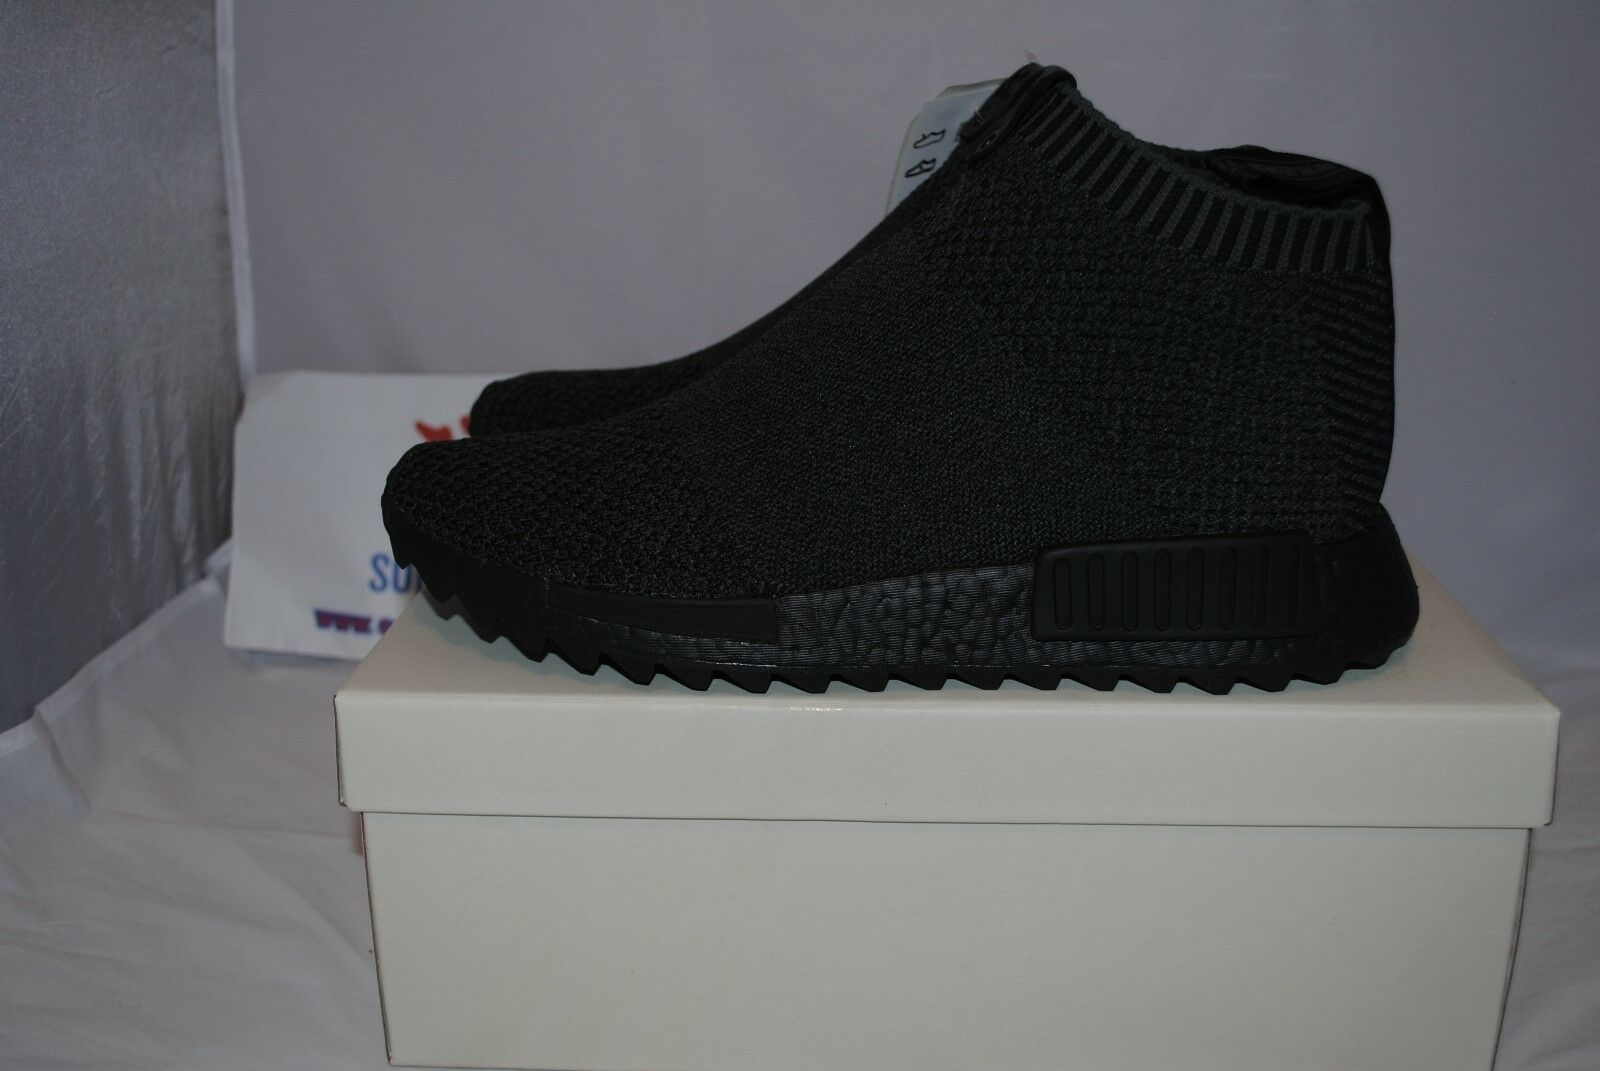 ADIDAS CONSORTIUM X THE GOOD WILL OUT NMD CS1 CITY SOCK PK PRIMEKNIT  US 8-13